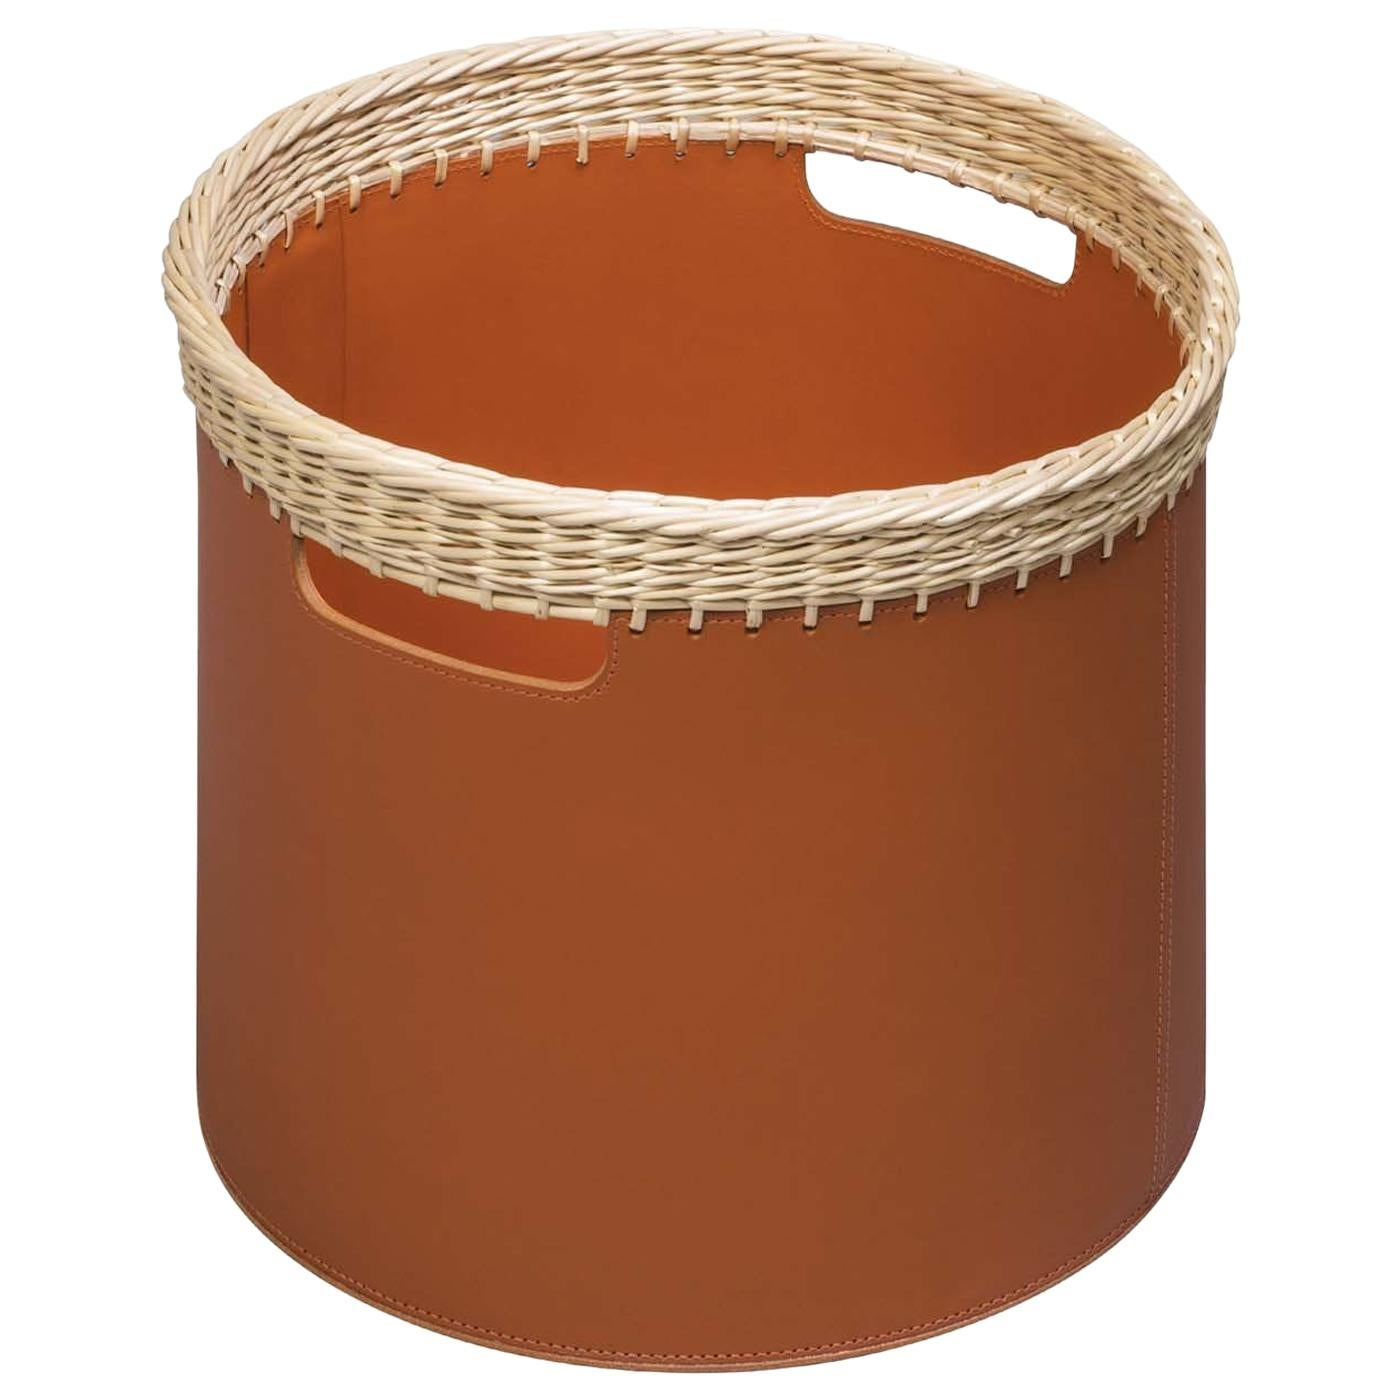 Como Small Round Basket in Cognac Leather